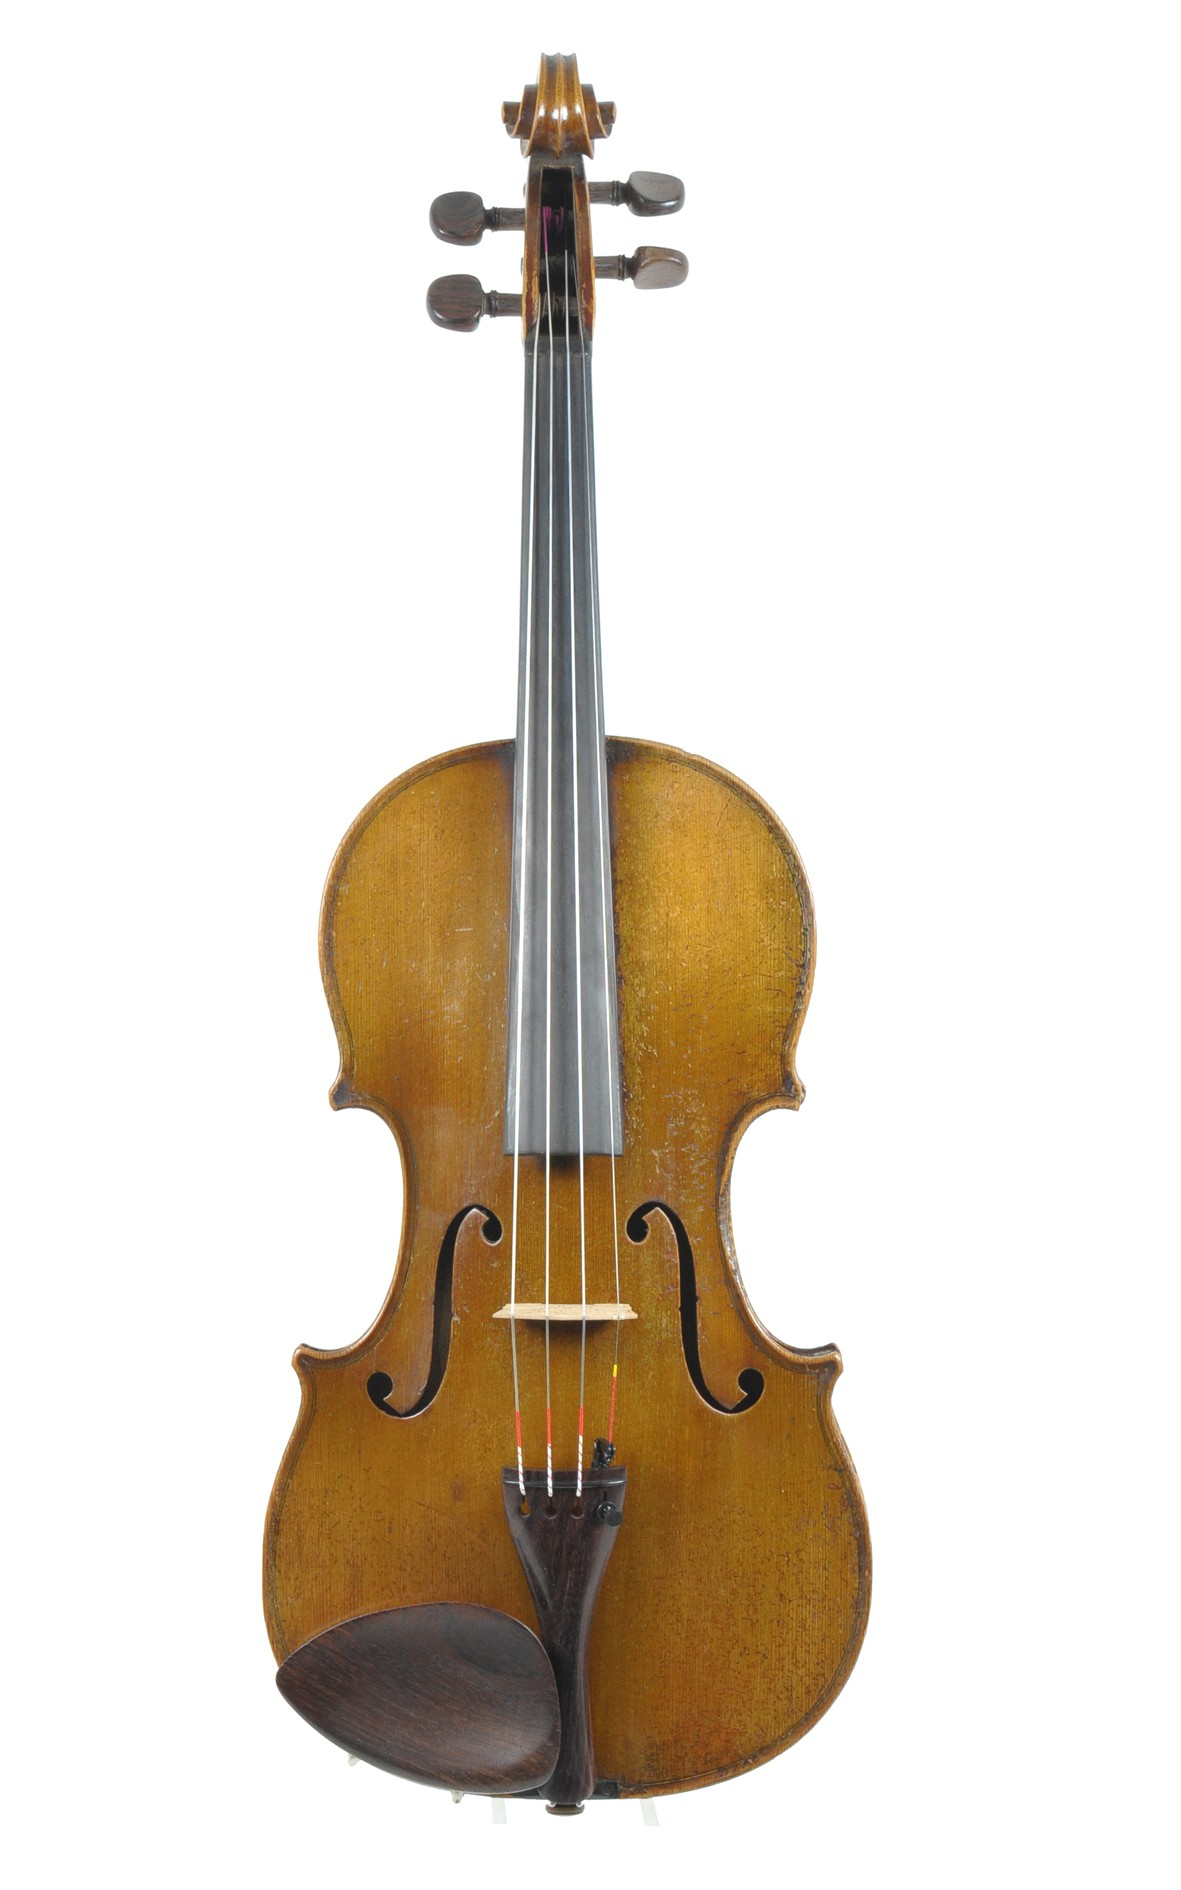 Old French violin, revised and sold by Paul Serdet